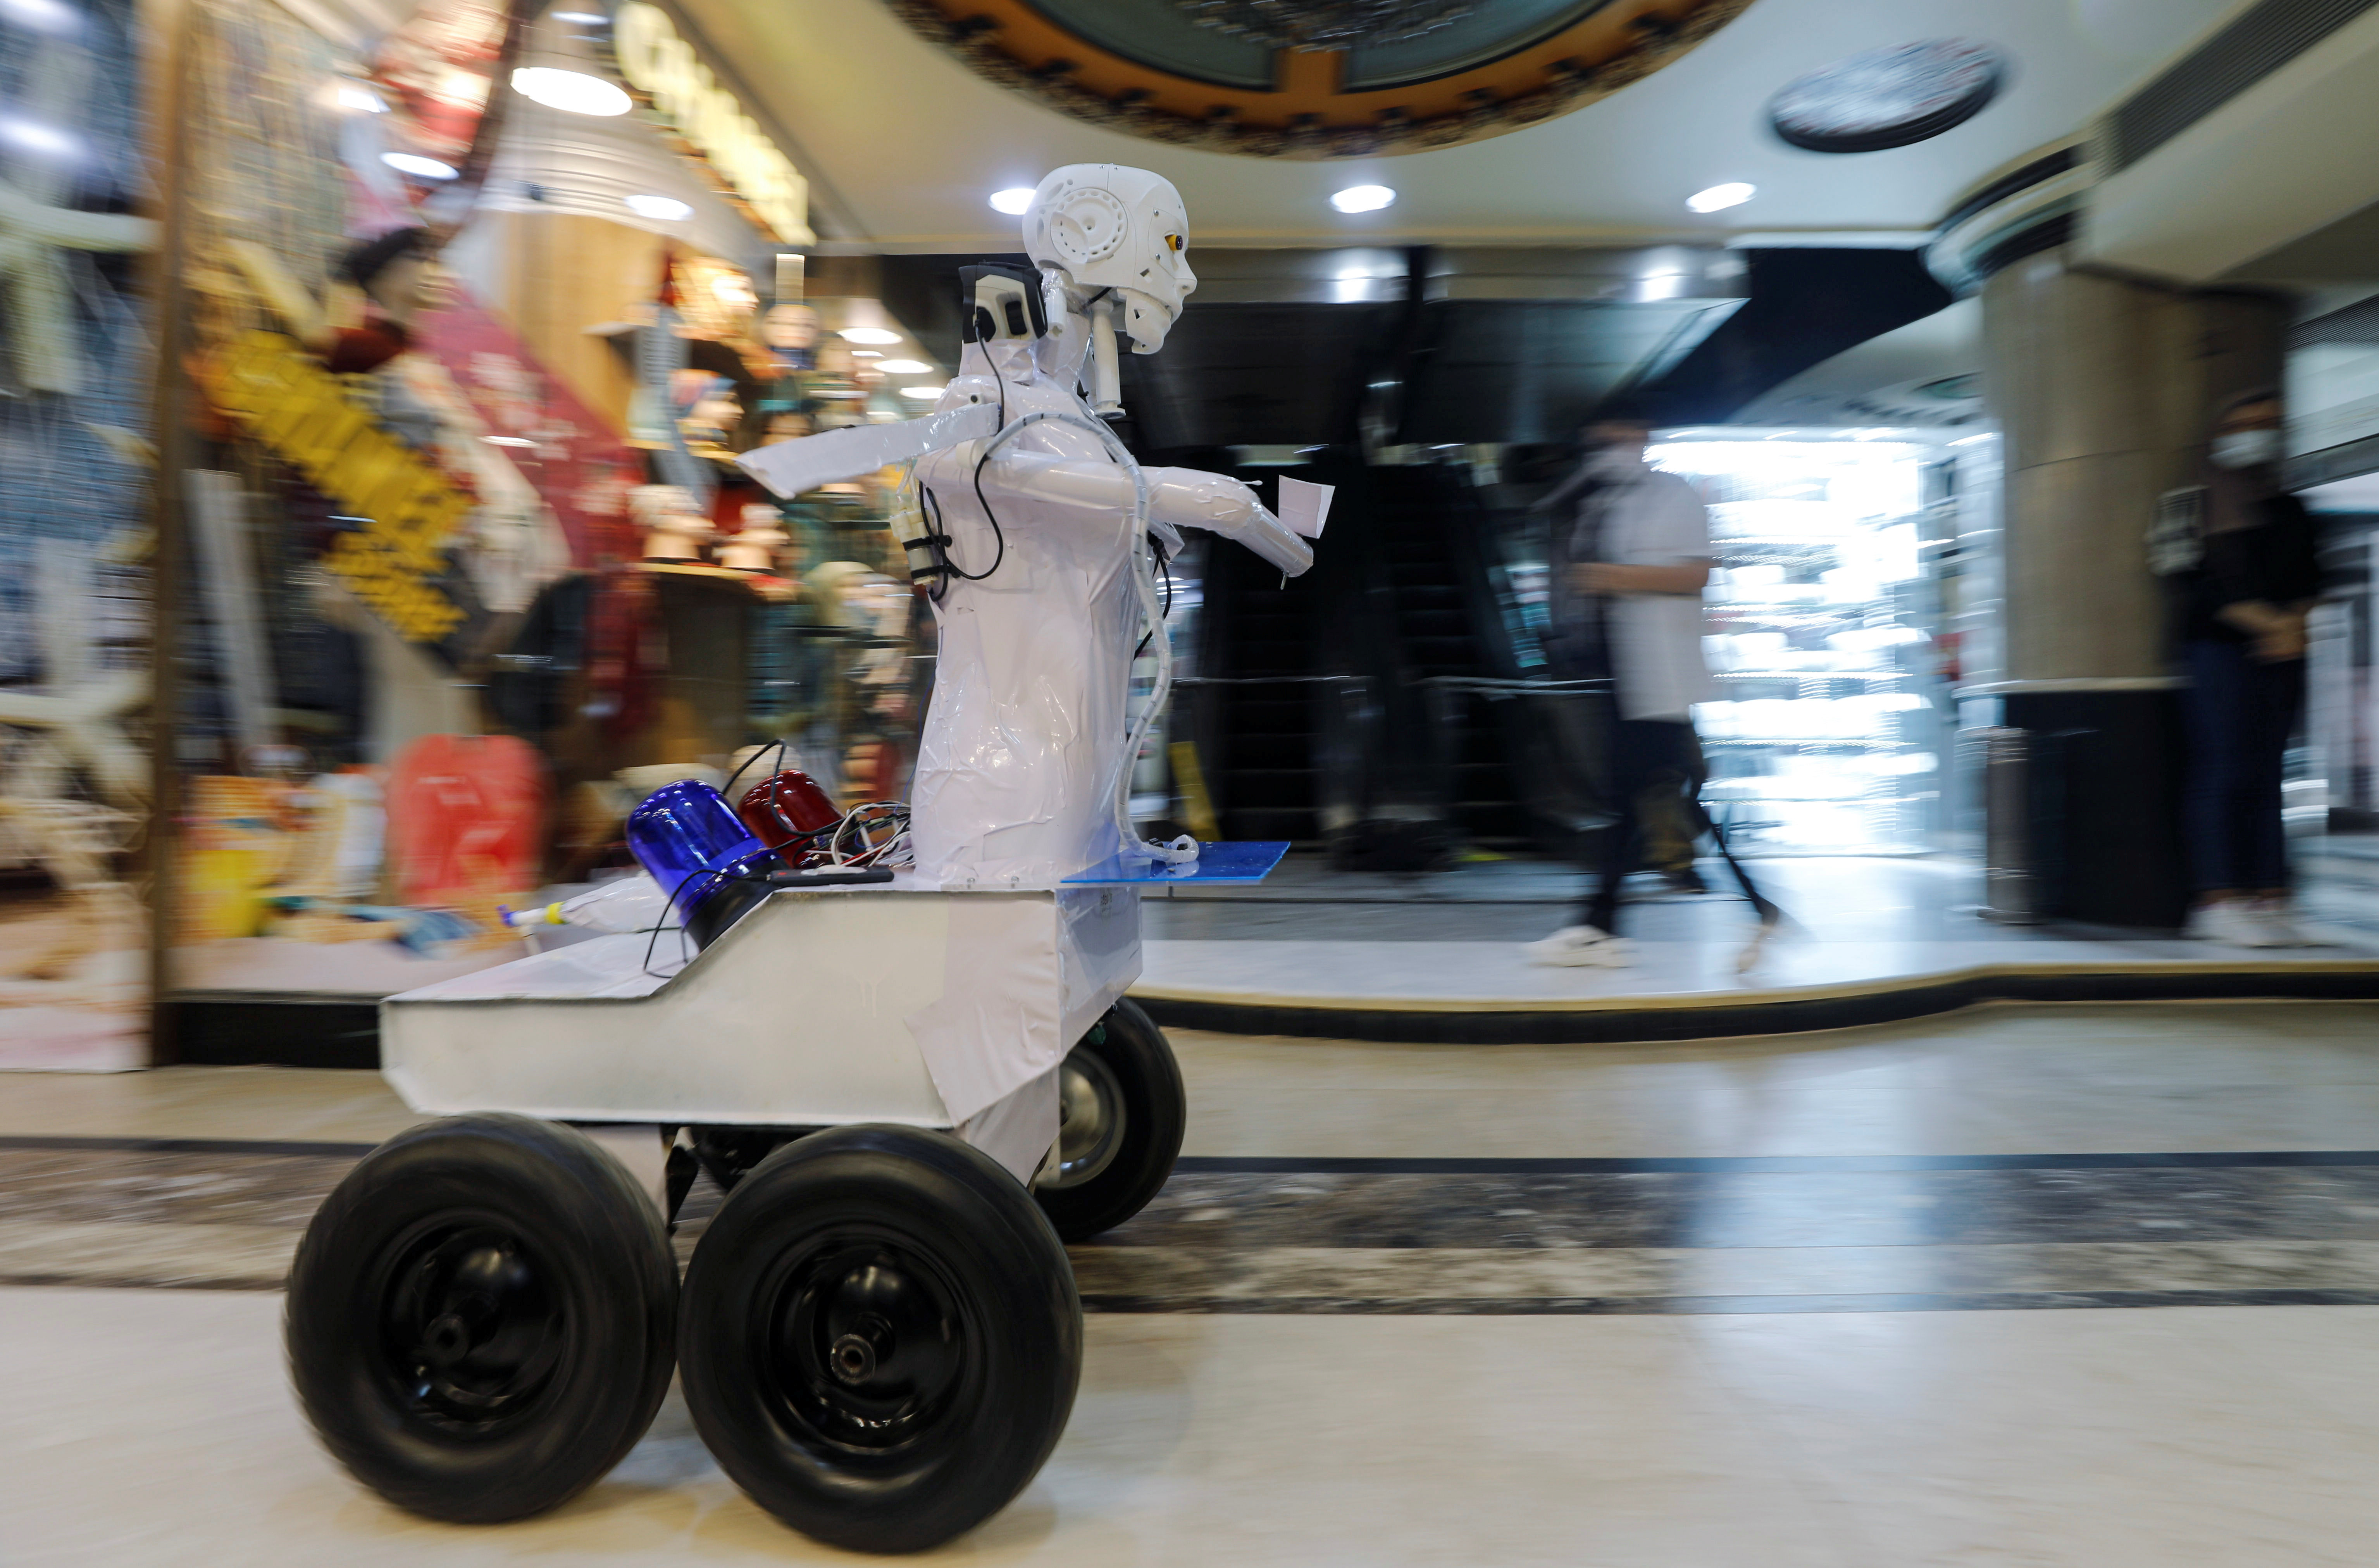 The remote-controlled robot that has been built by the Egyptian mechanical engineer, Mahmoud El komy, 26, moves at a mall to test people for the coronavirus by running PCR tests, limiting exposure to suspected cases, during the global outbreak of the coronavirus disease (COVID-19), in Cairo, Egypt June 12, 2020. Picture taken June 12, 2020.REUTERS/Mohamed Abd El Ghany - RC2U9H9YT3TT